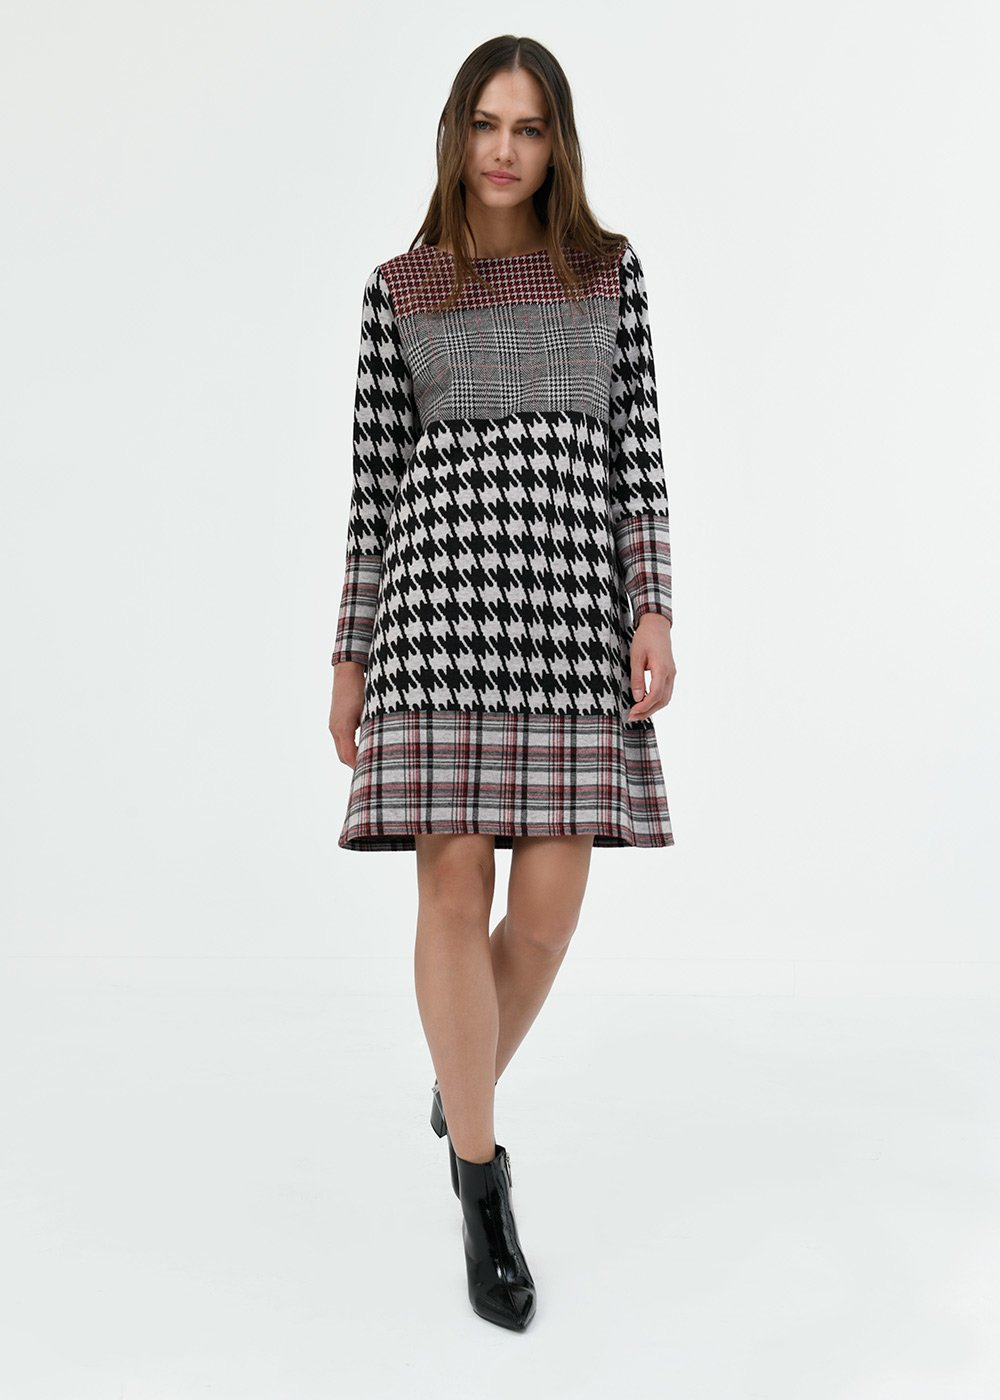 Alvin dress with mixed pattern - Black / White / Multi - Woman